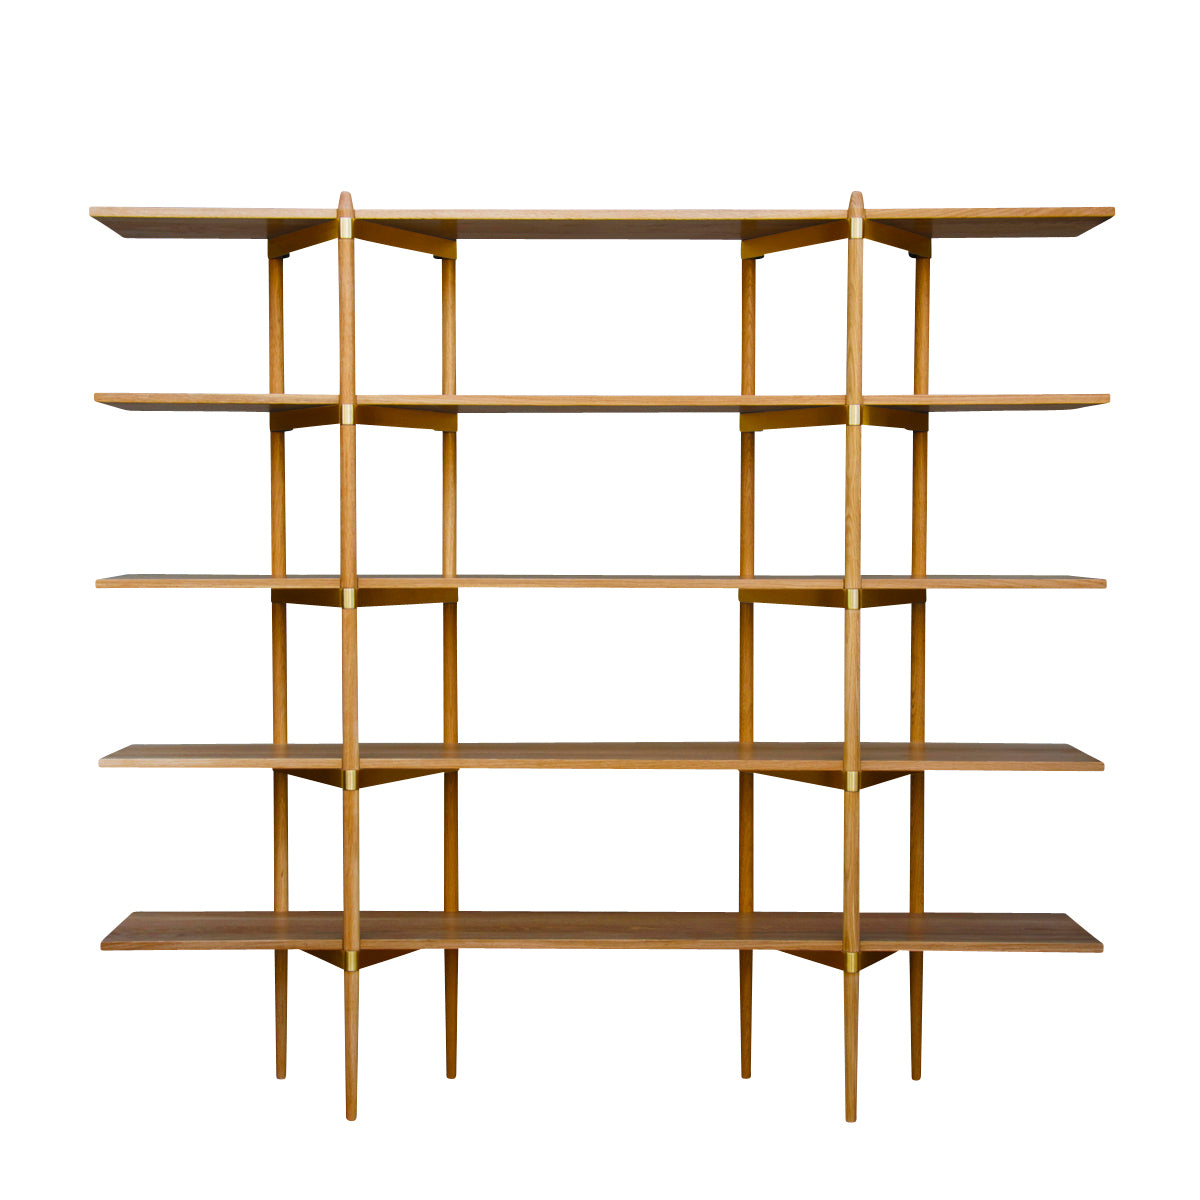 Primo Shelving System: High + Oak + Brass